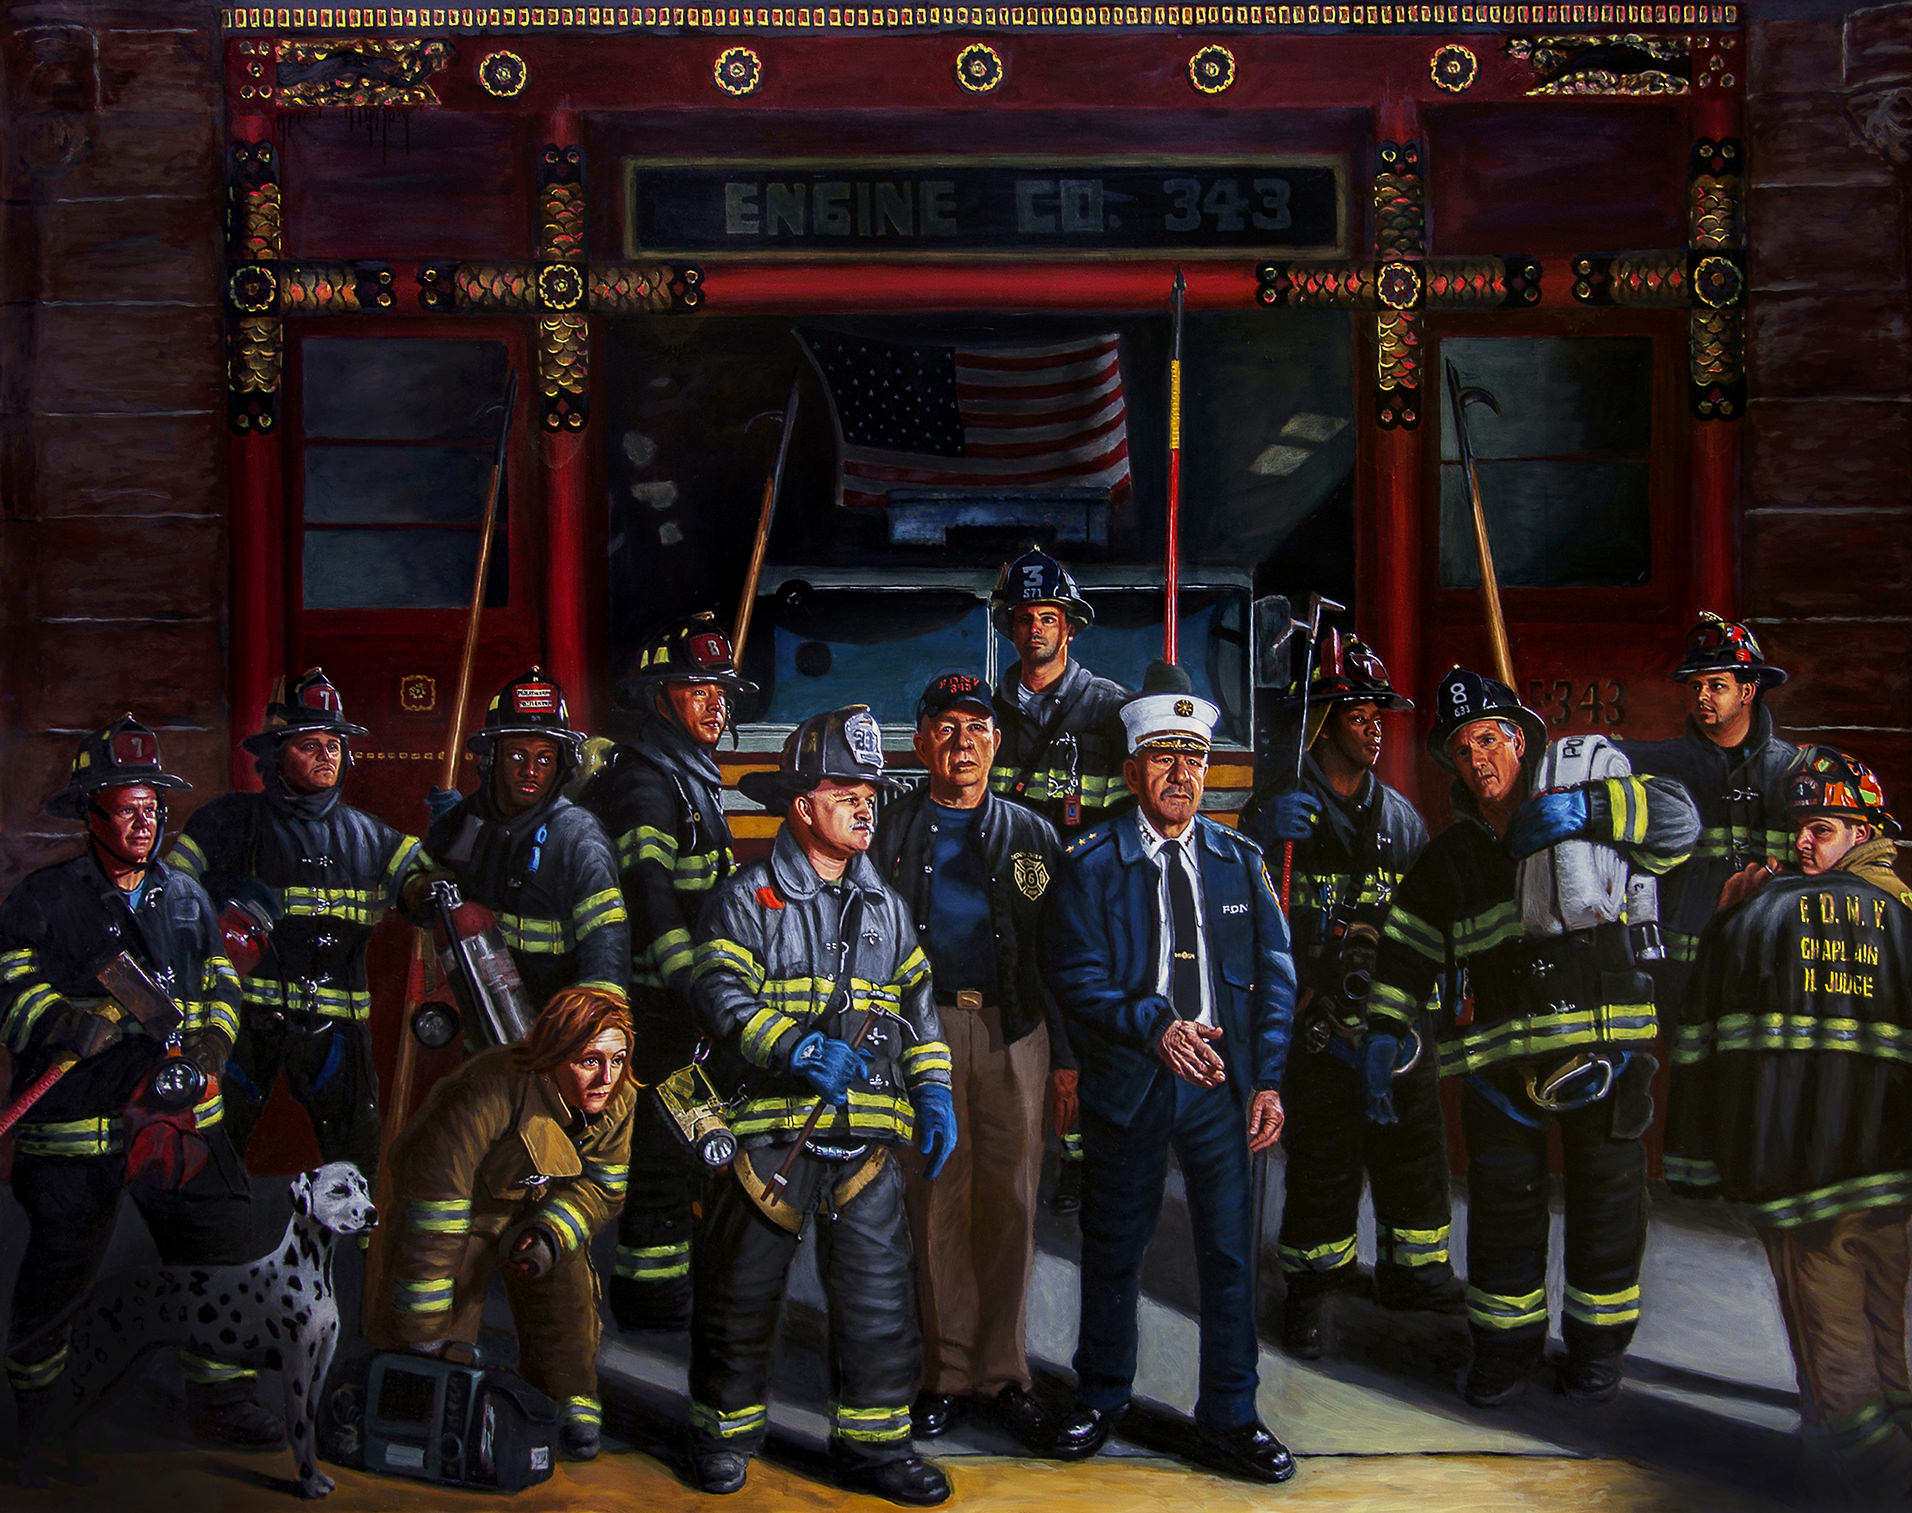 """FDNY Night Tour"" by Tom Mason"